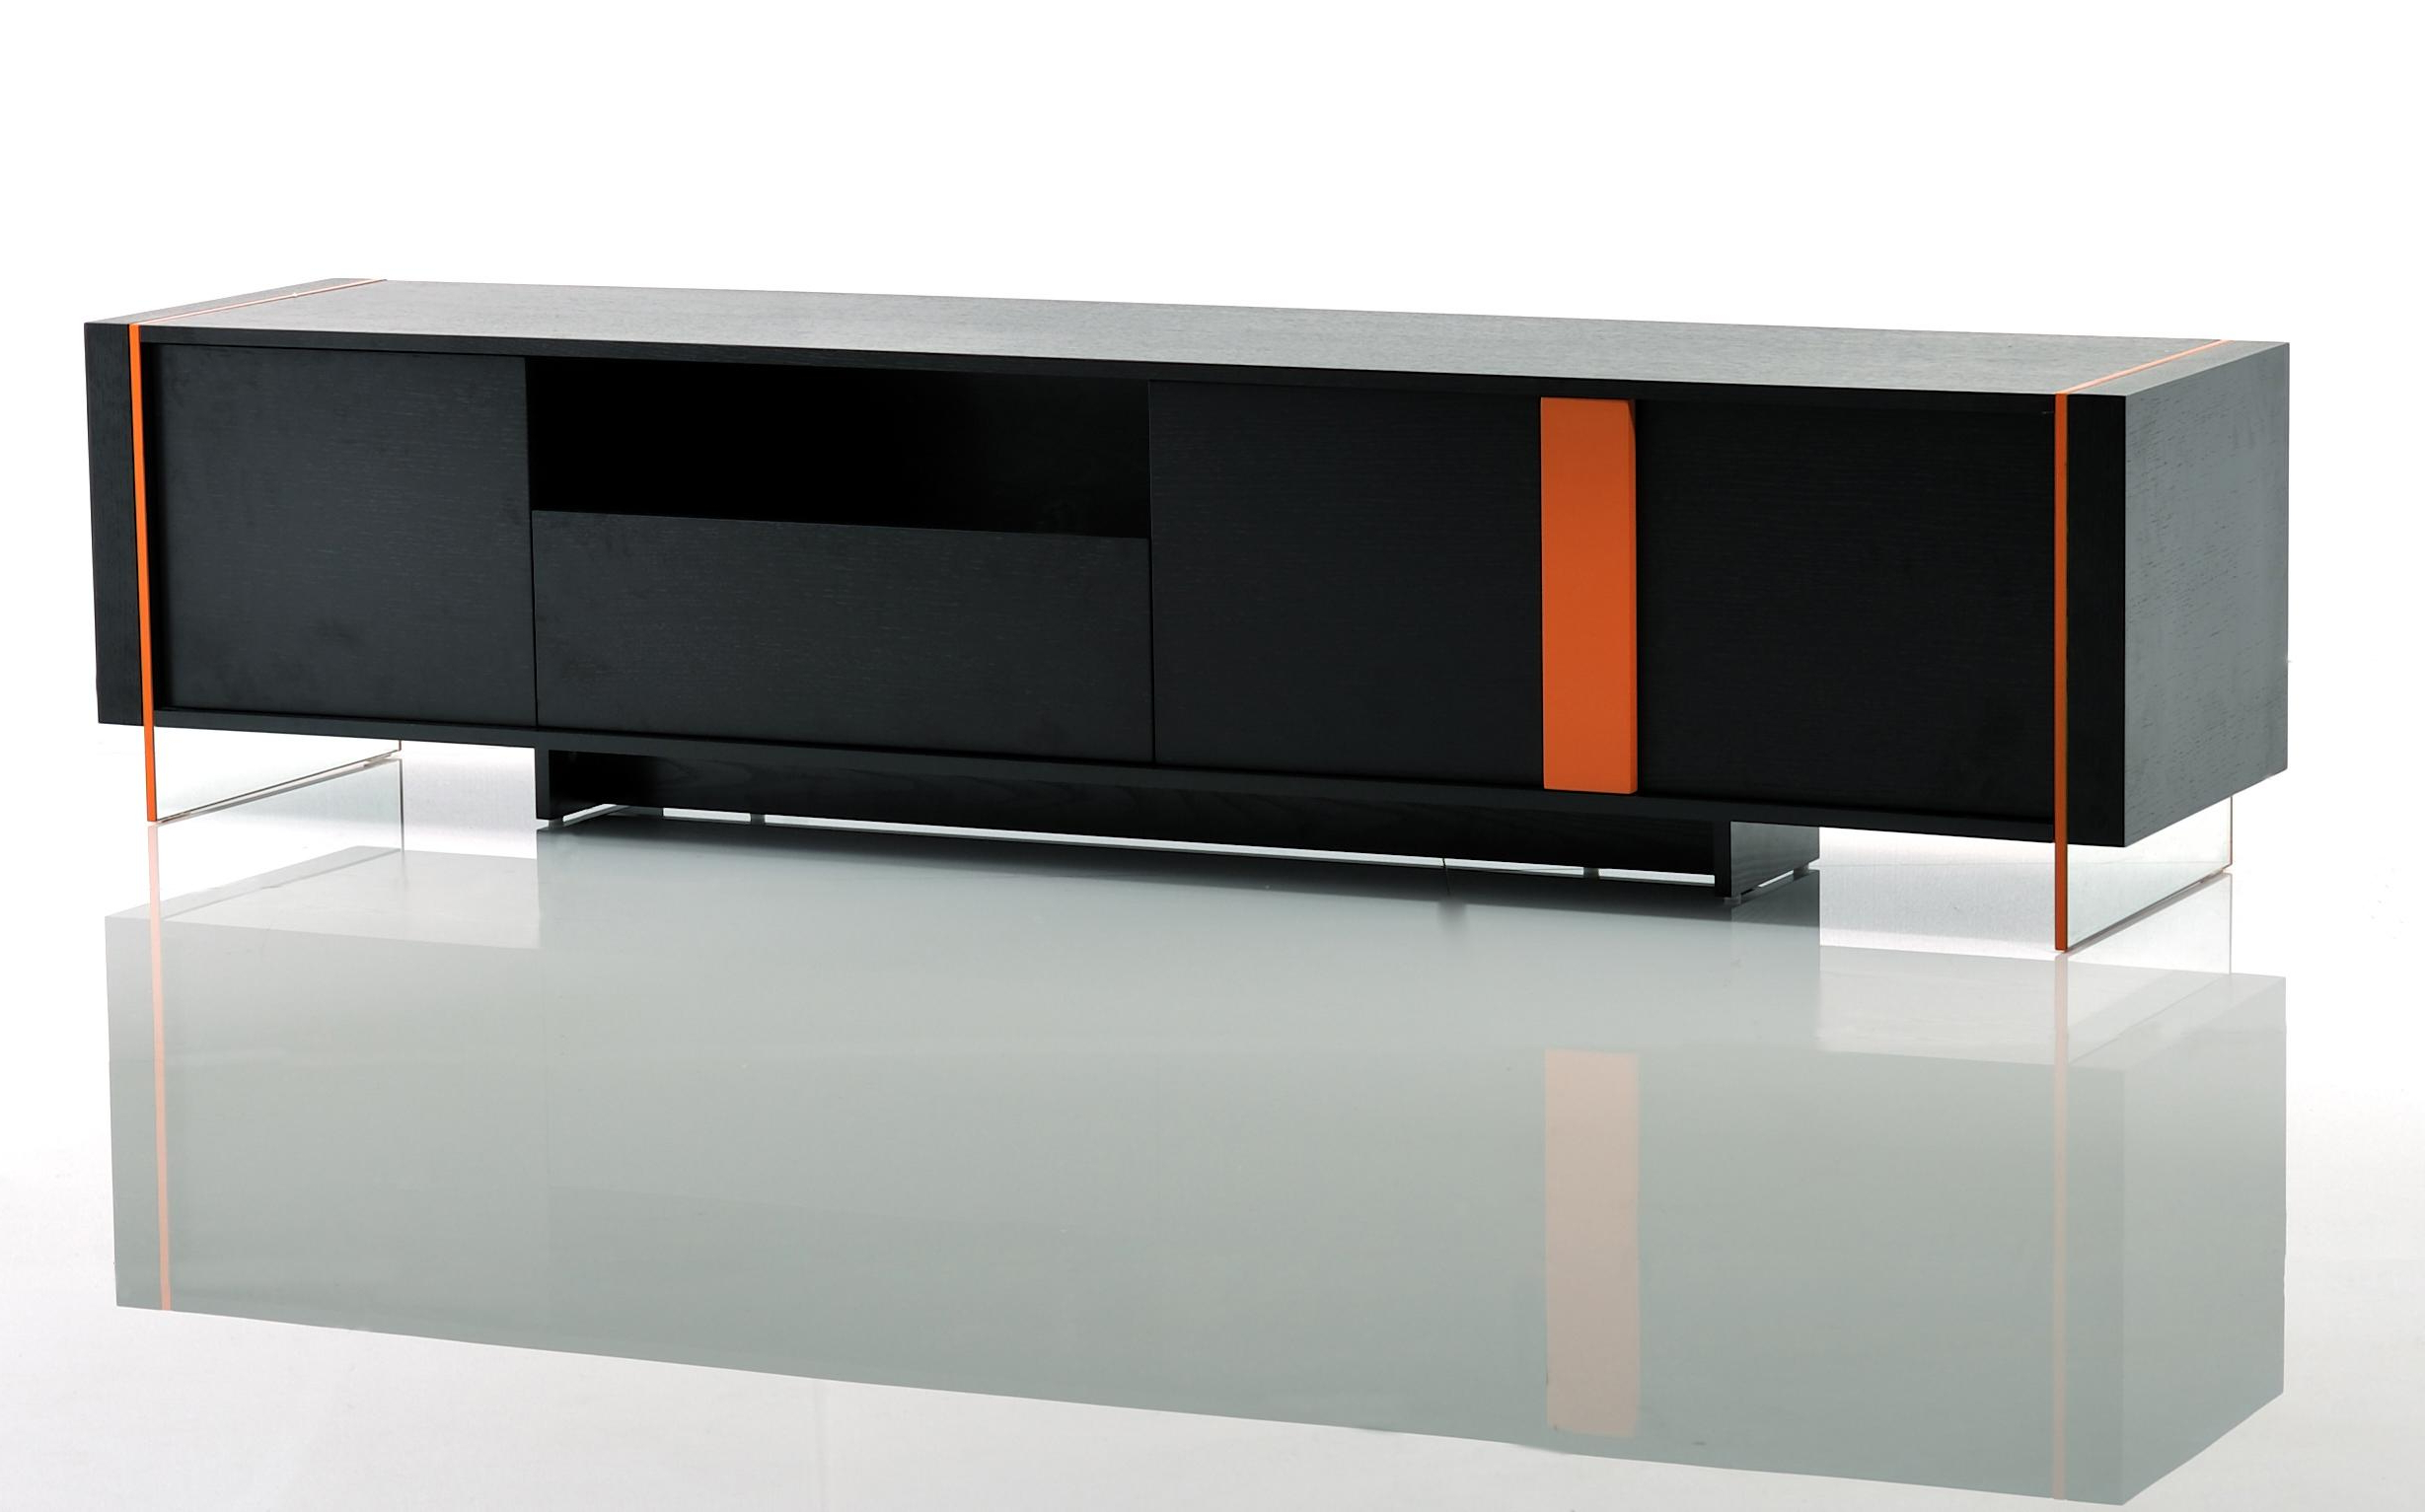 Widely Used Contemporary Black Oak And Orange Floating Tv Stand Austin Texas Vvis Regarding Tall Black Tv Cabinets (View 18 of 20)